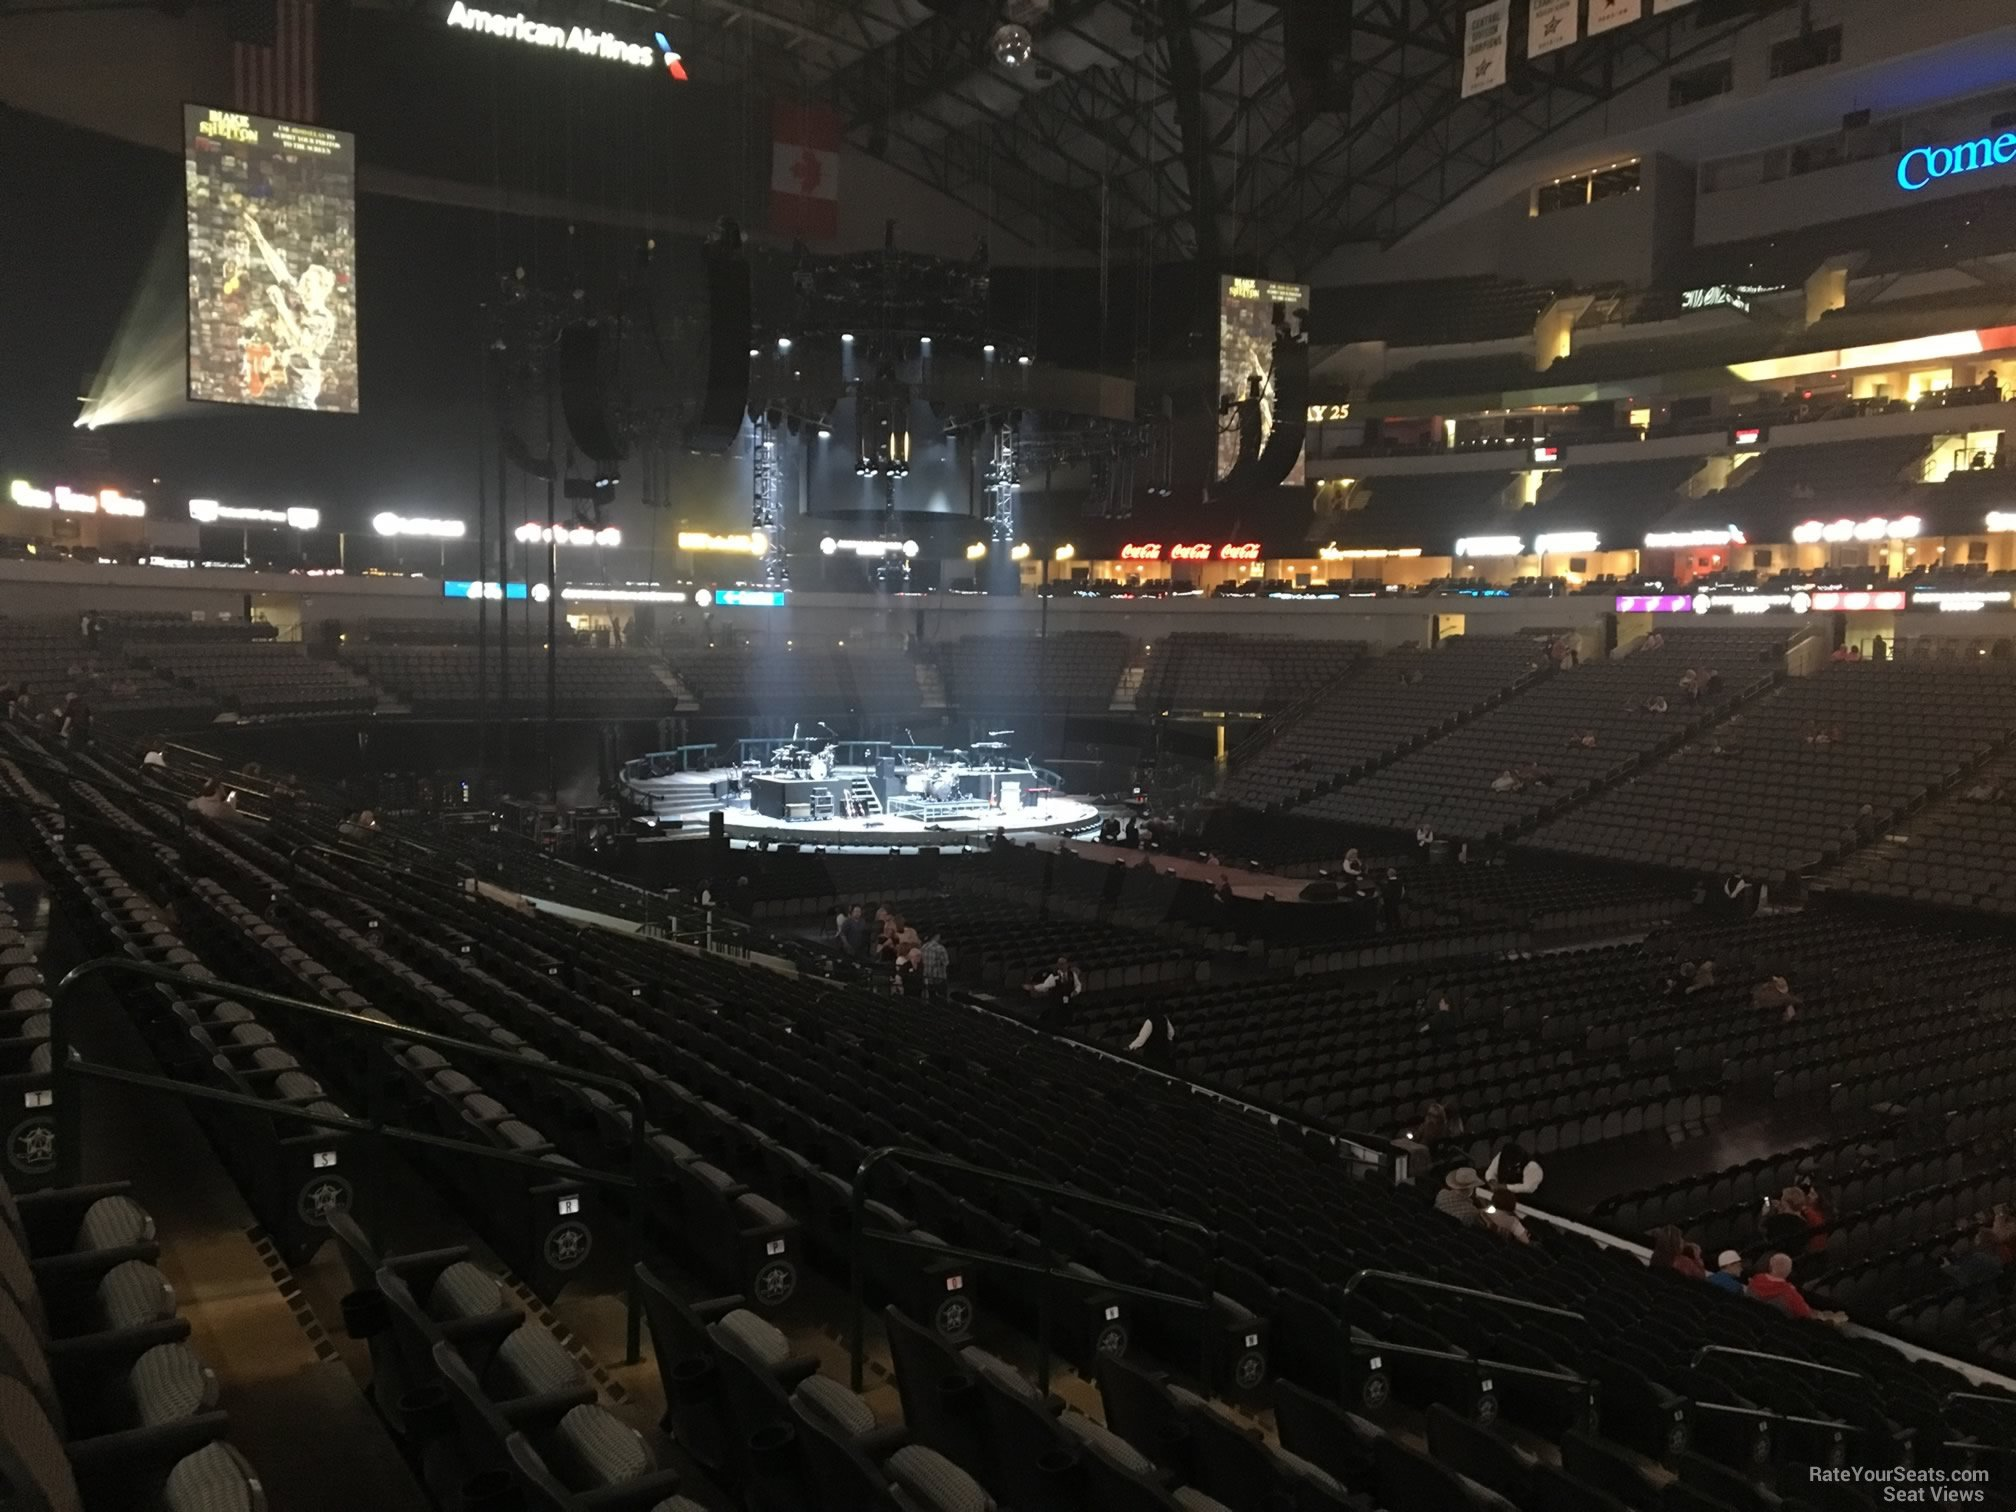 American Airlines Center Section 116 Concert Seating Rateyourseats Com